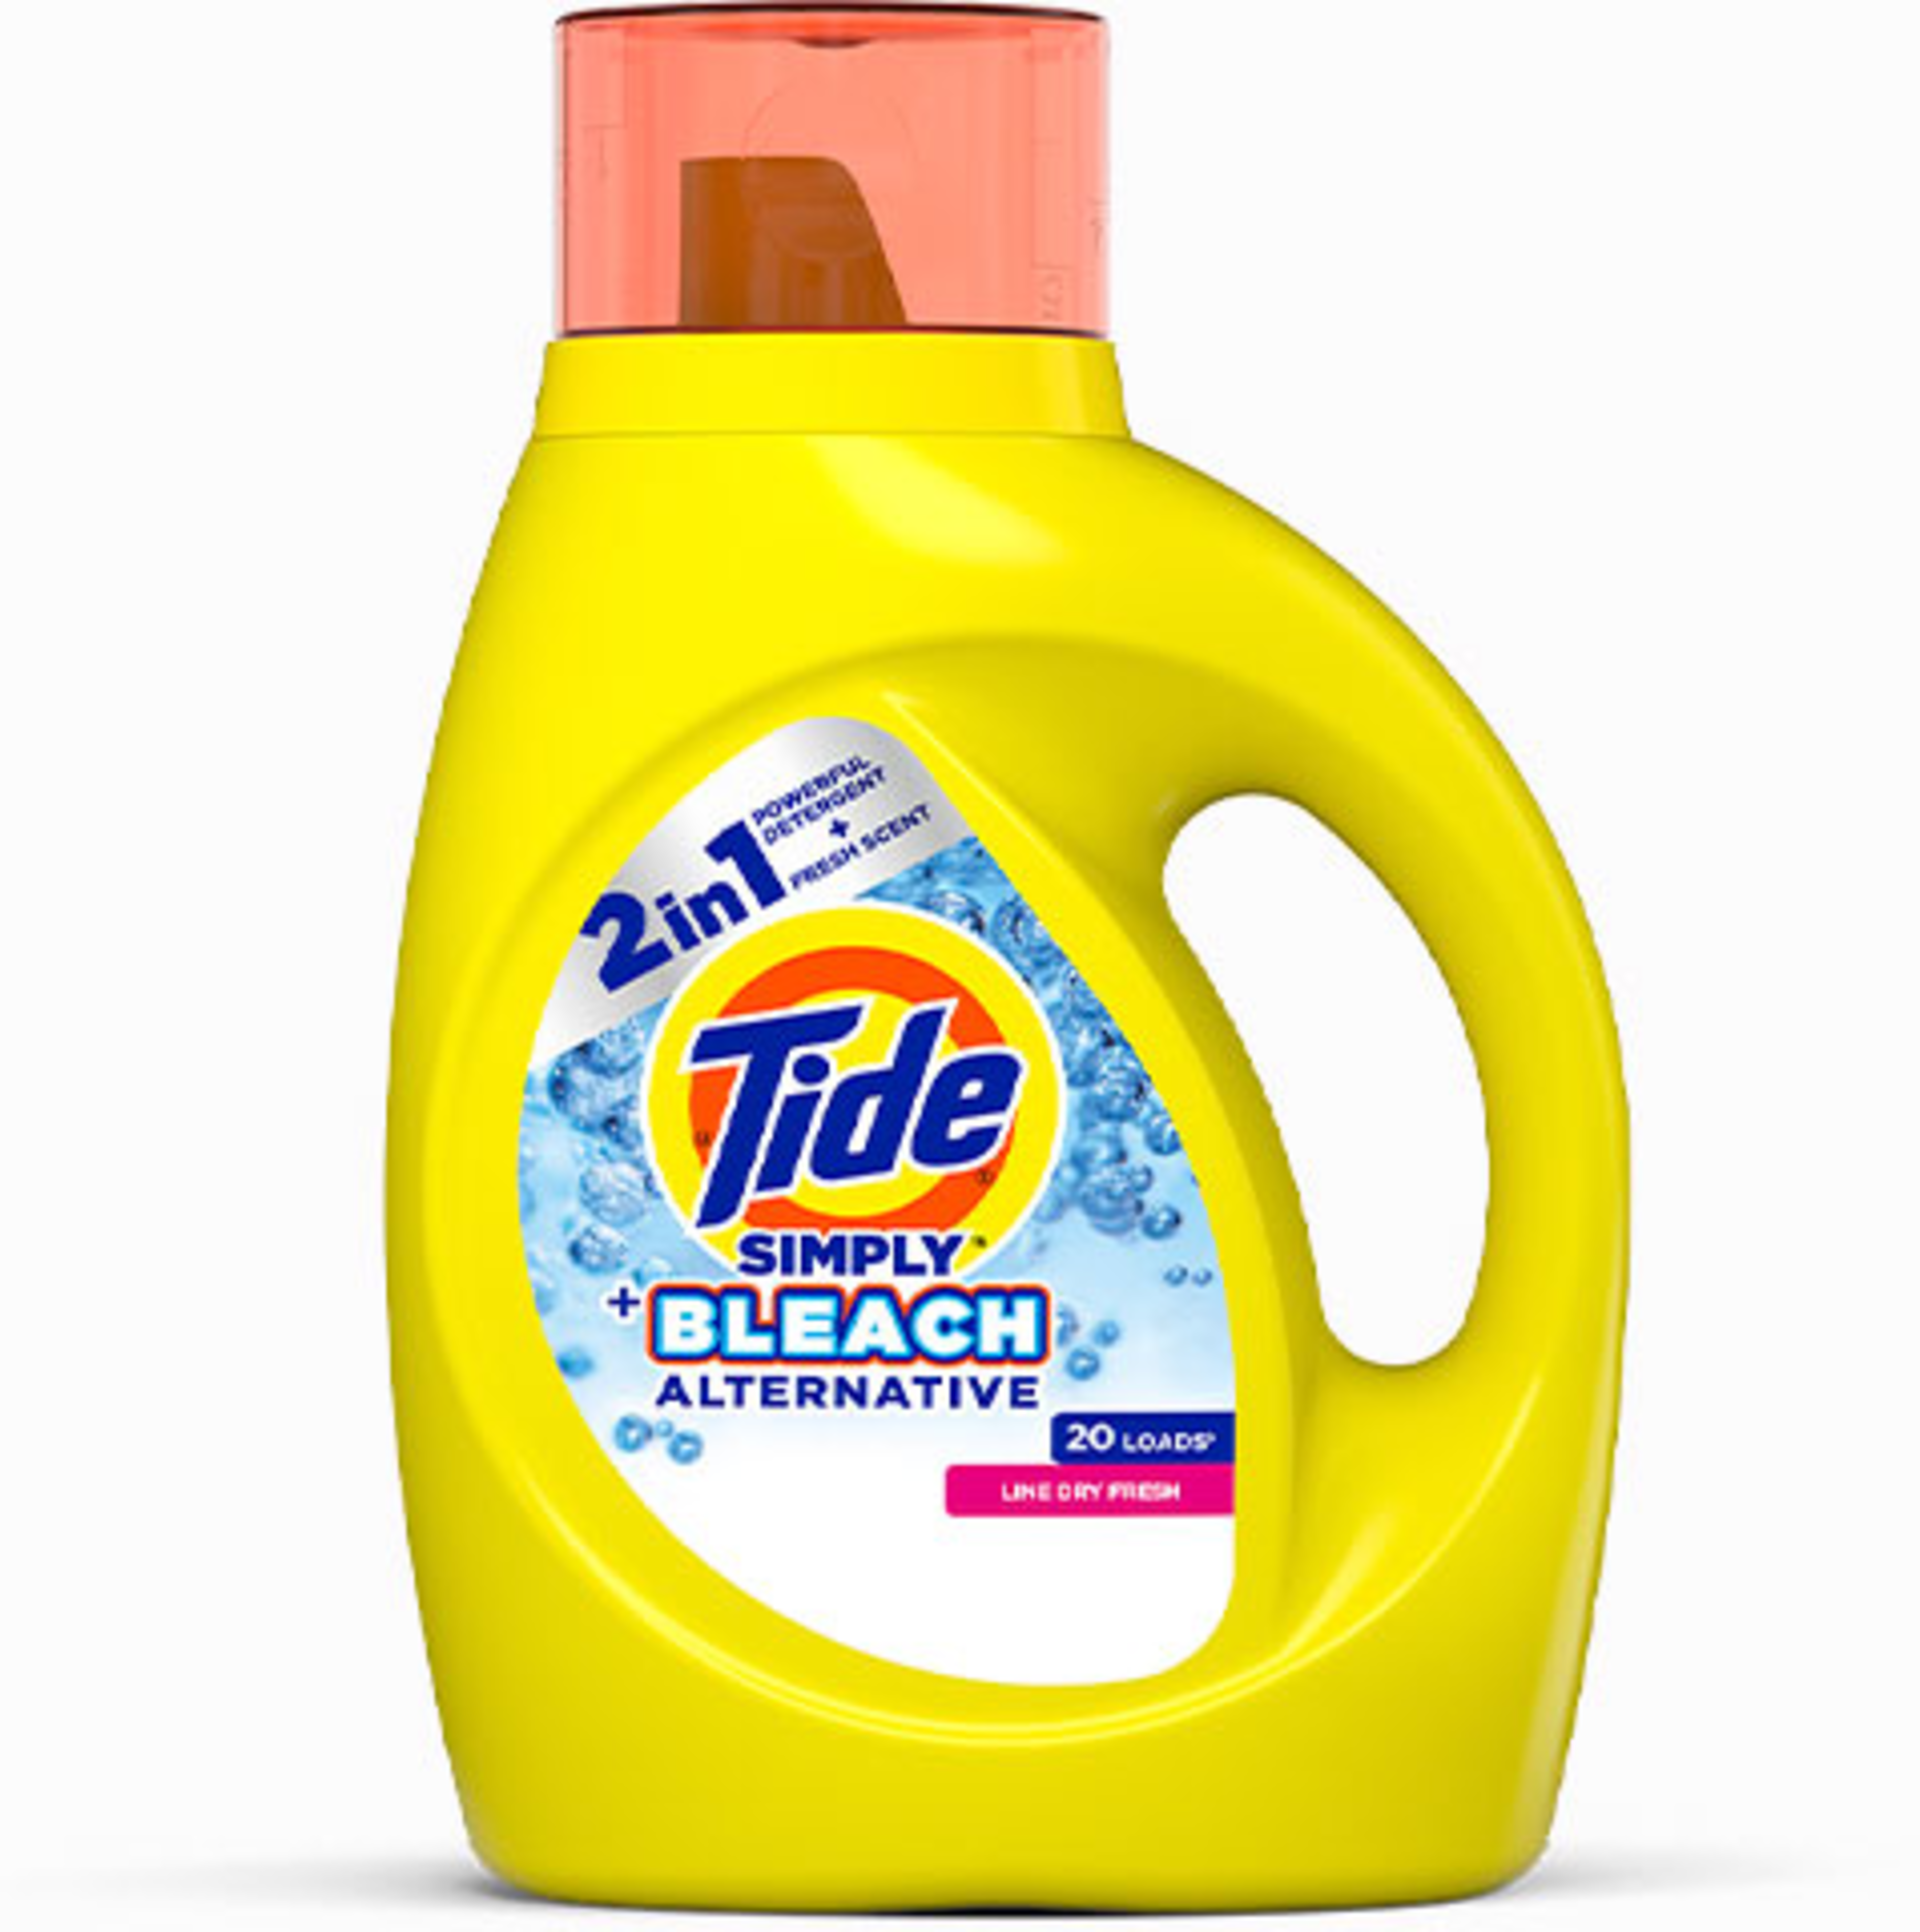 Tide Simply Plus Bleach Alternative Liquid Laundry Detergent cleans, whitens and brightens your clothes.